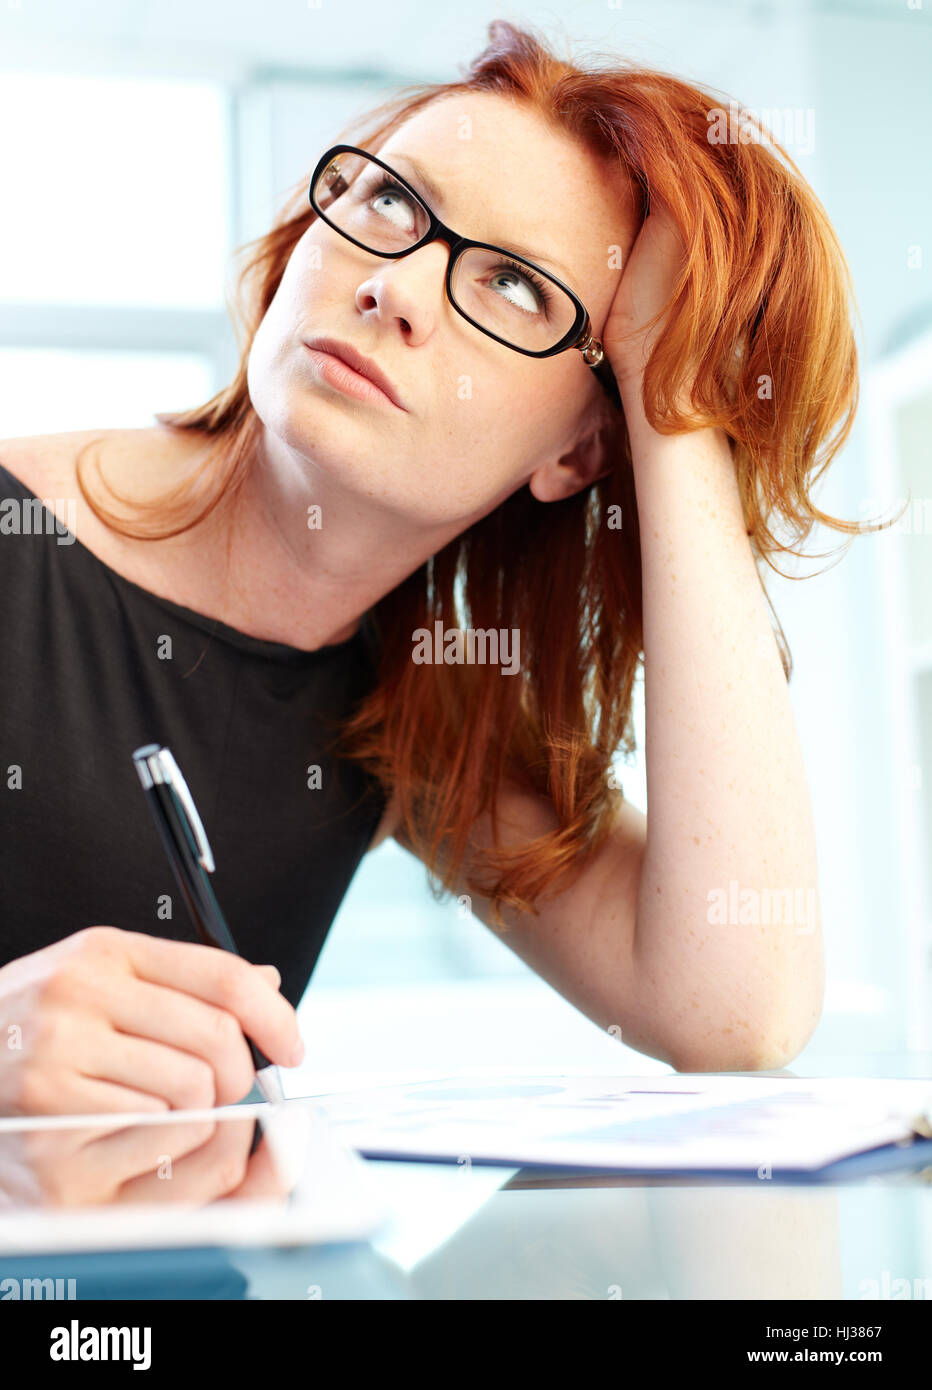 woman, humans, human beings, people, folk, persons, human, human being, write, - Stock Image